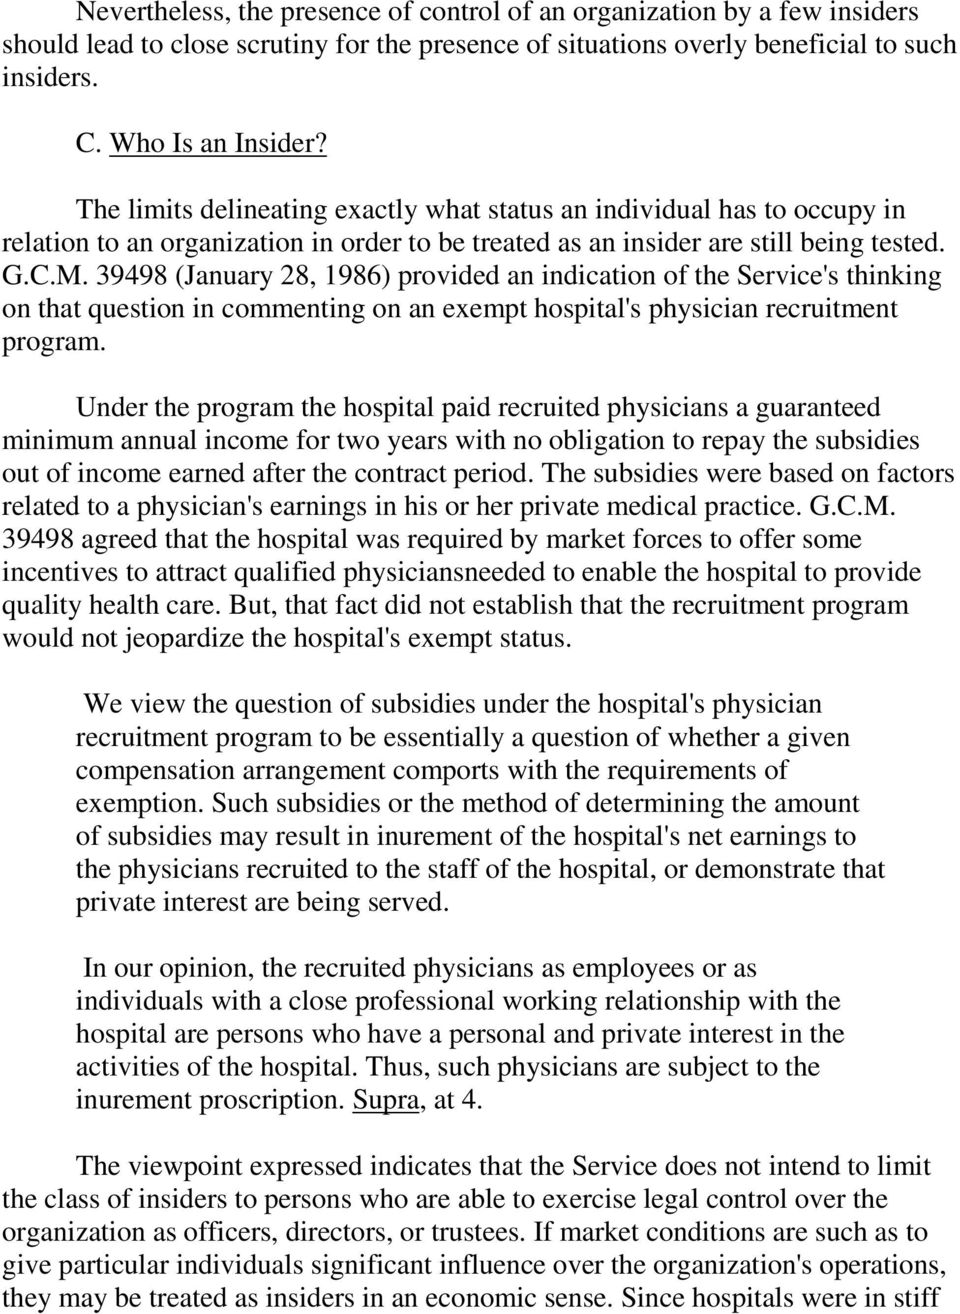 39498 (January 28, 1986) provided an indication of the Service's thinking on that question in commenting on an exempt hospital's physician recruitment program.